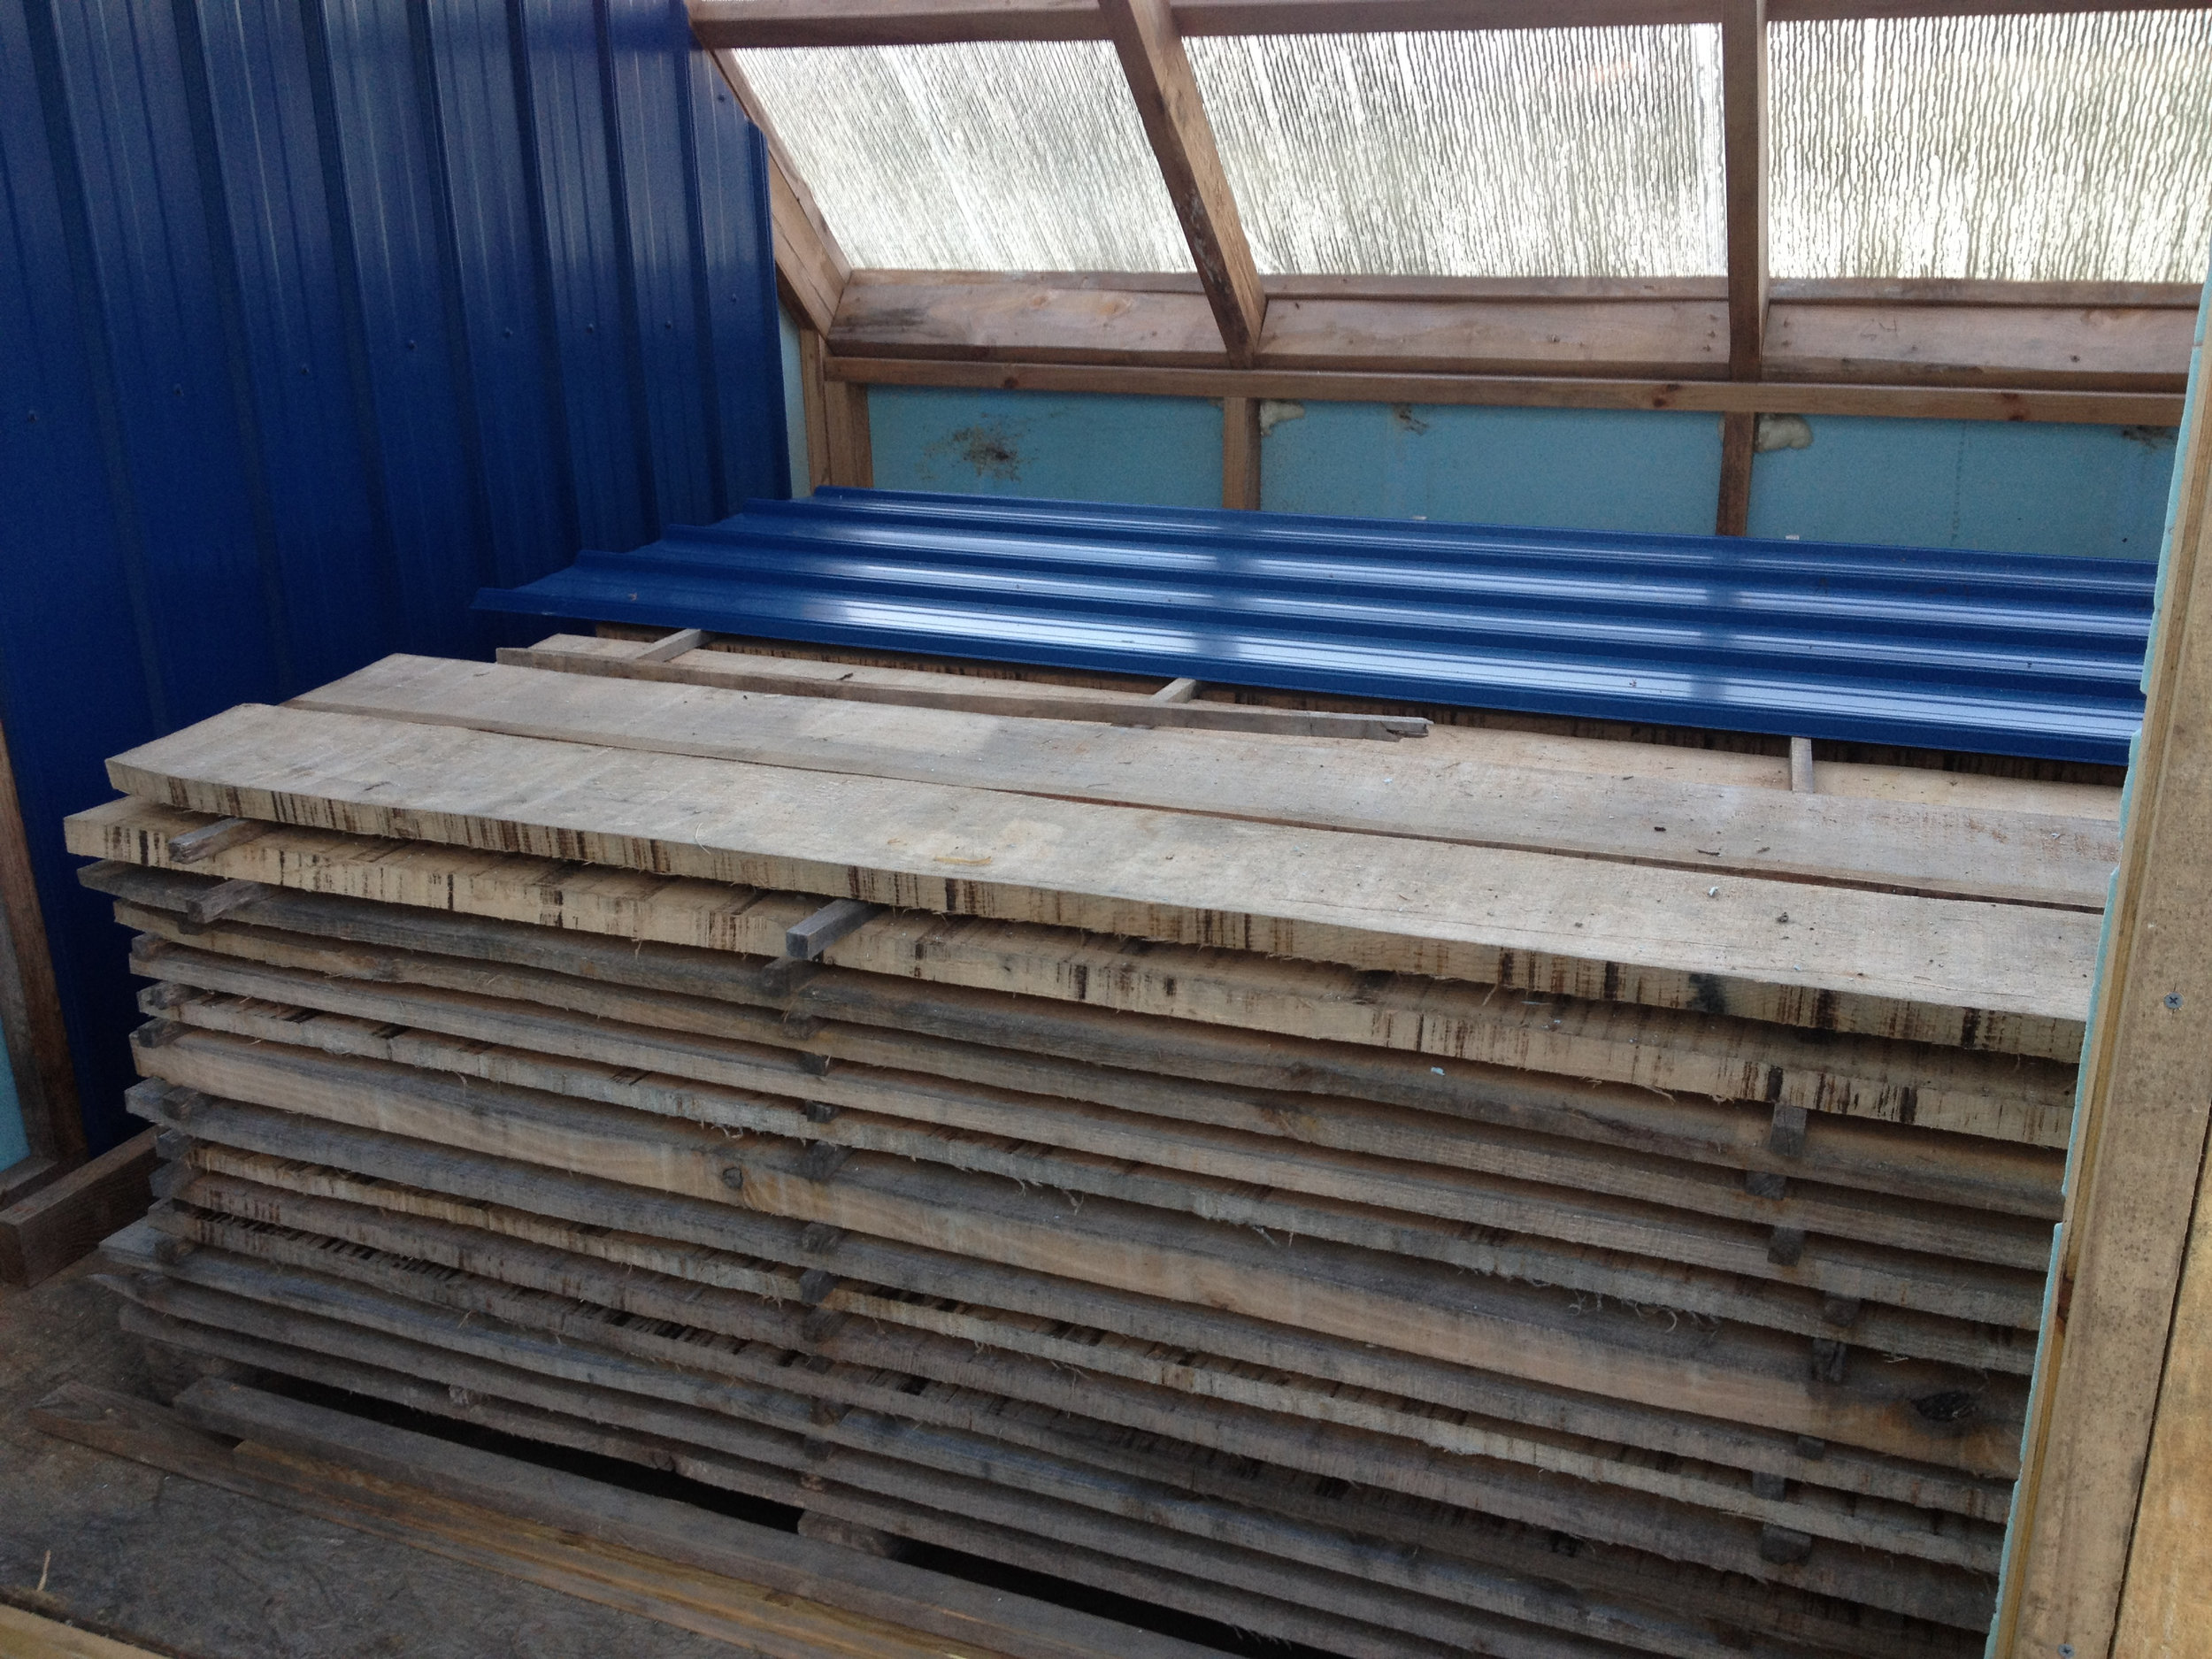 Our solar powered kiln dries lumber for cabinets and furniture!